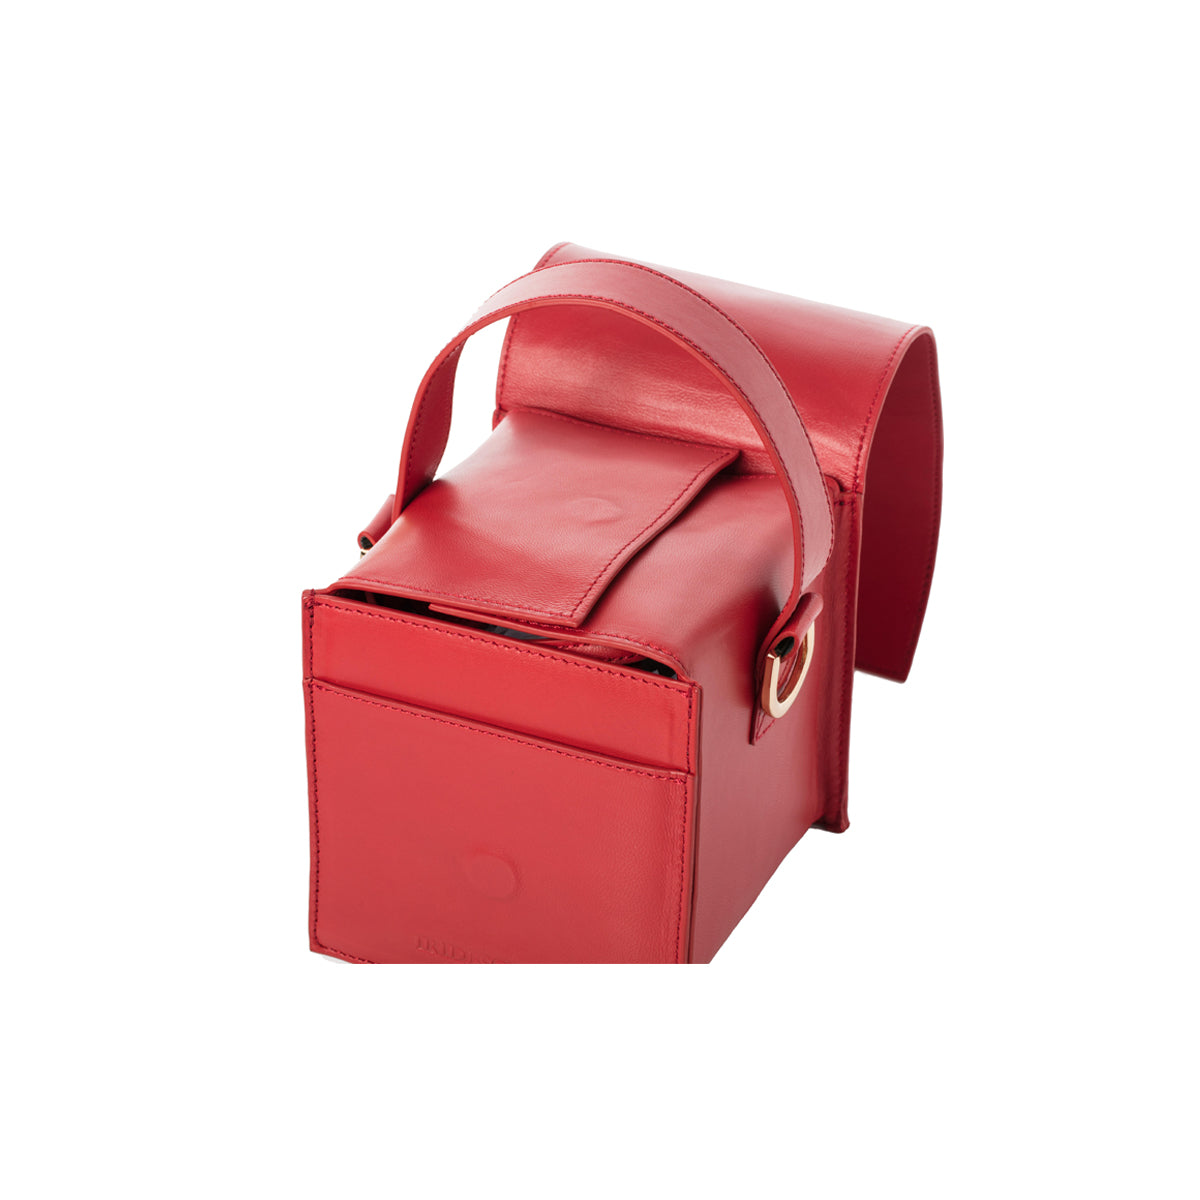 DUMBO Red Lambskin Top Handle